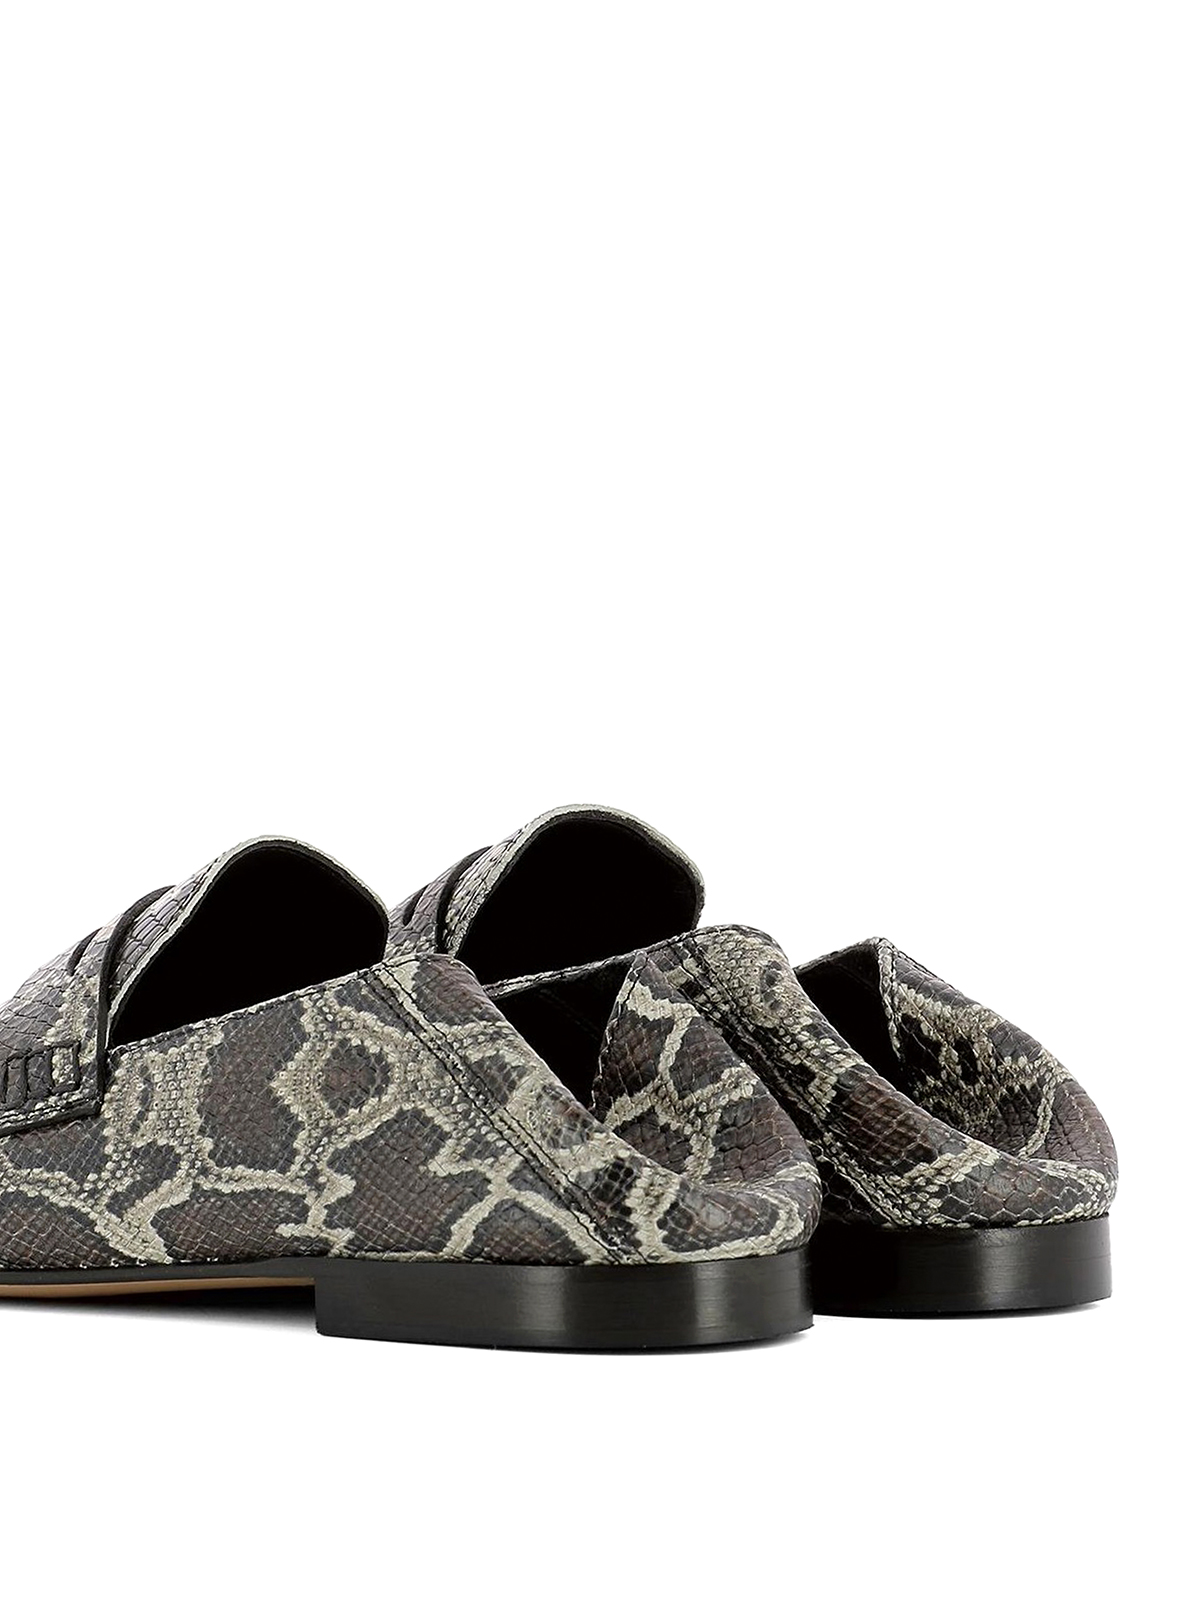 ddf73c7b3a0 Isabel Marant - Fezzy python print leather loafers - Loafers ...